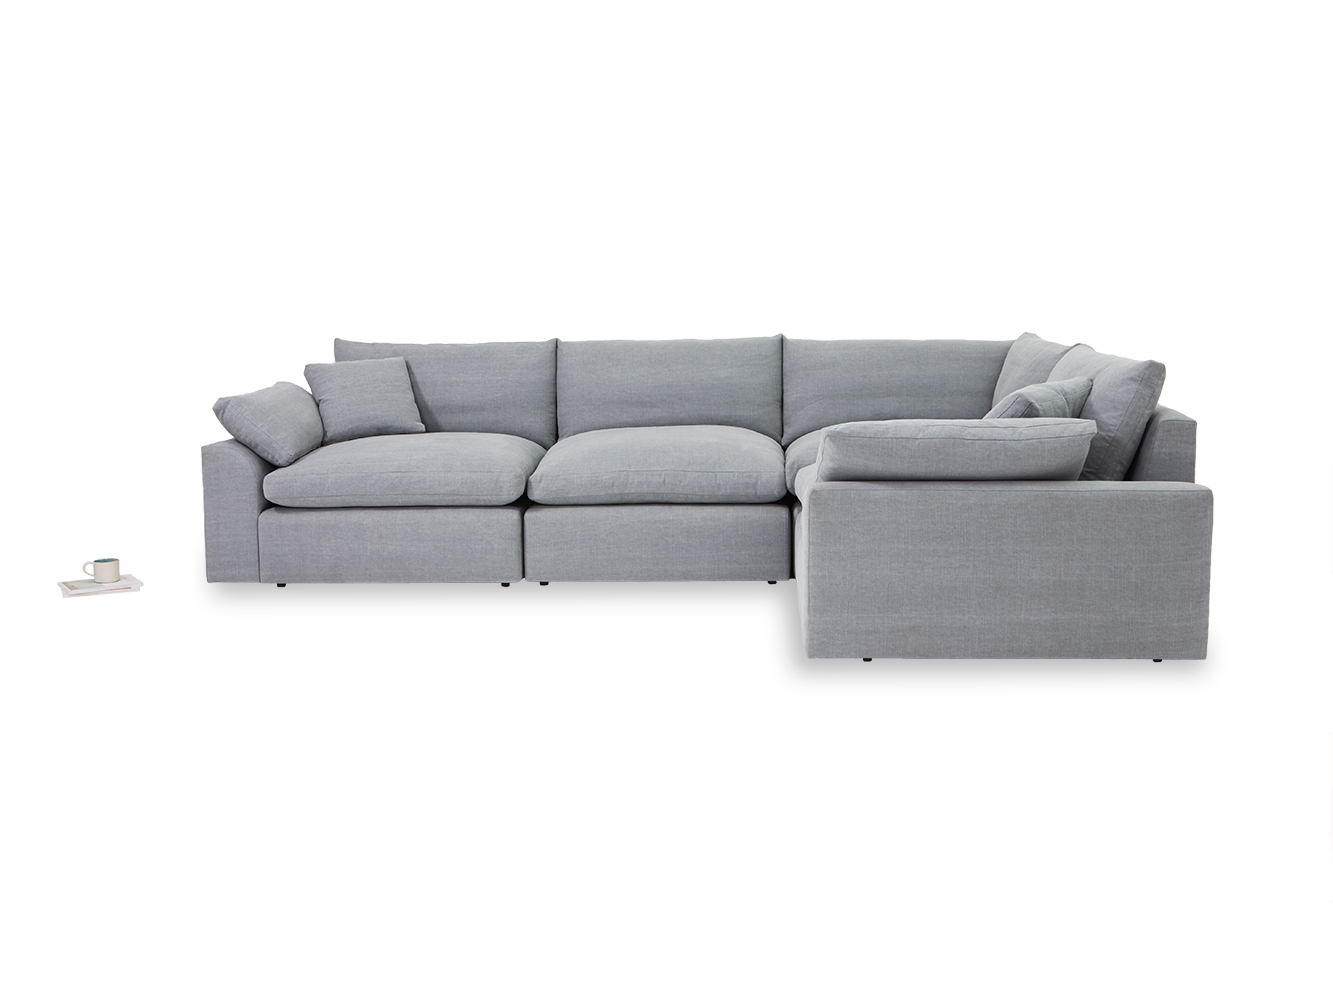 Remarkable Cuddlemuffin Modular Corner Sofa Download Free Architecture Designs Embacsunscenecom